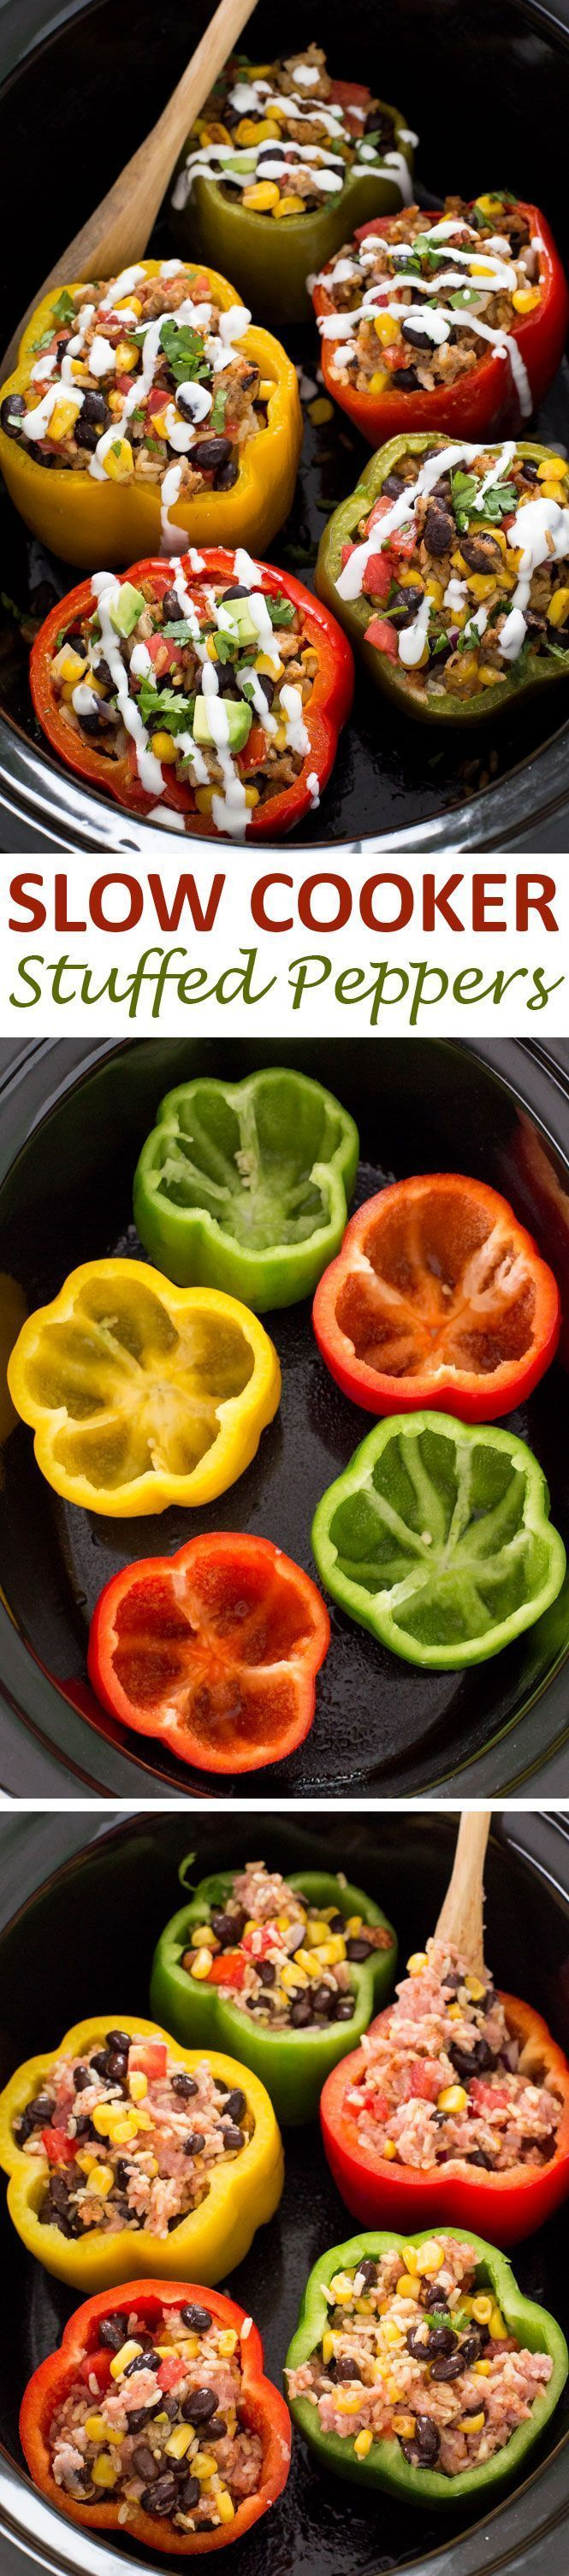 Mexican Slow Cooker Stuffed Peppers. Loaded with enchilada sauce, black beans and corn. A quick, easy and satisfying meal! | chefsavvy.com #recipe #slowcooker #crockpot #dinner #stuffed #peppers #dinner